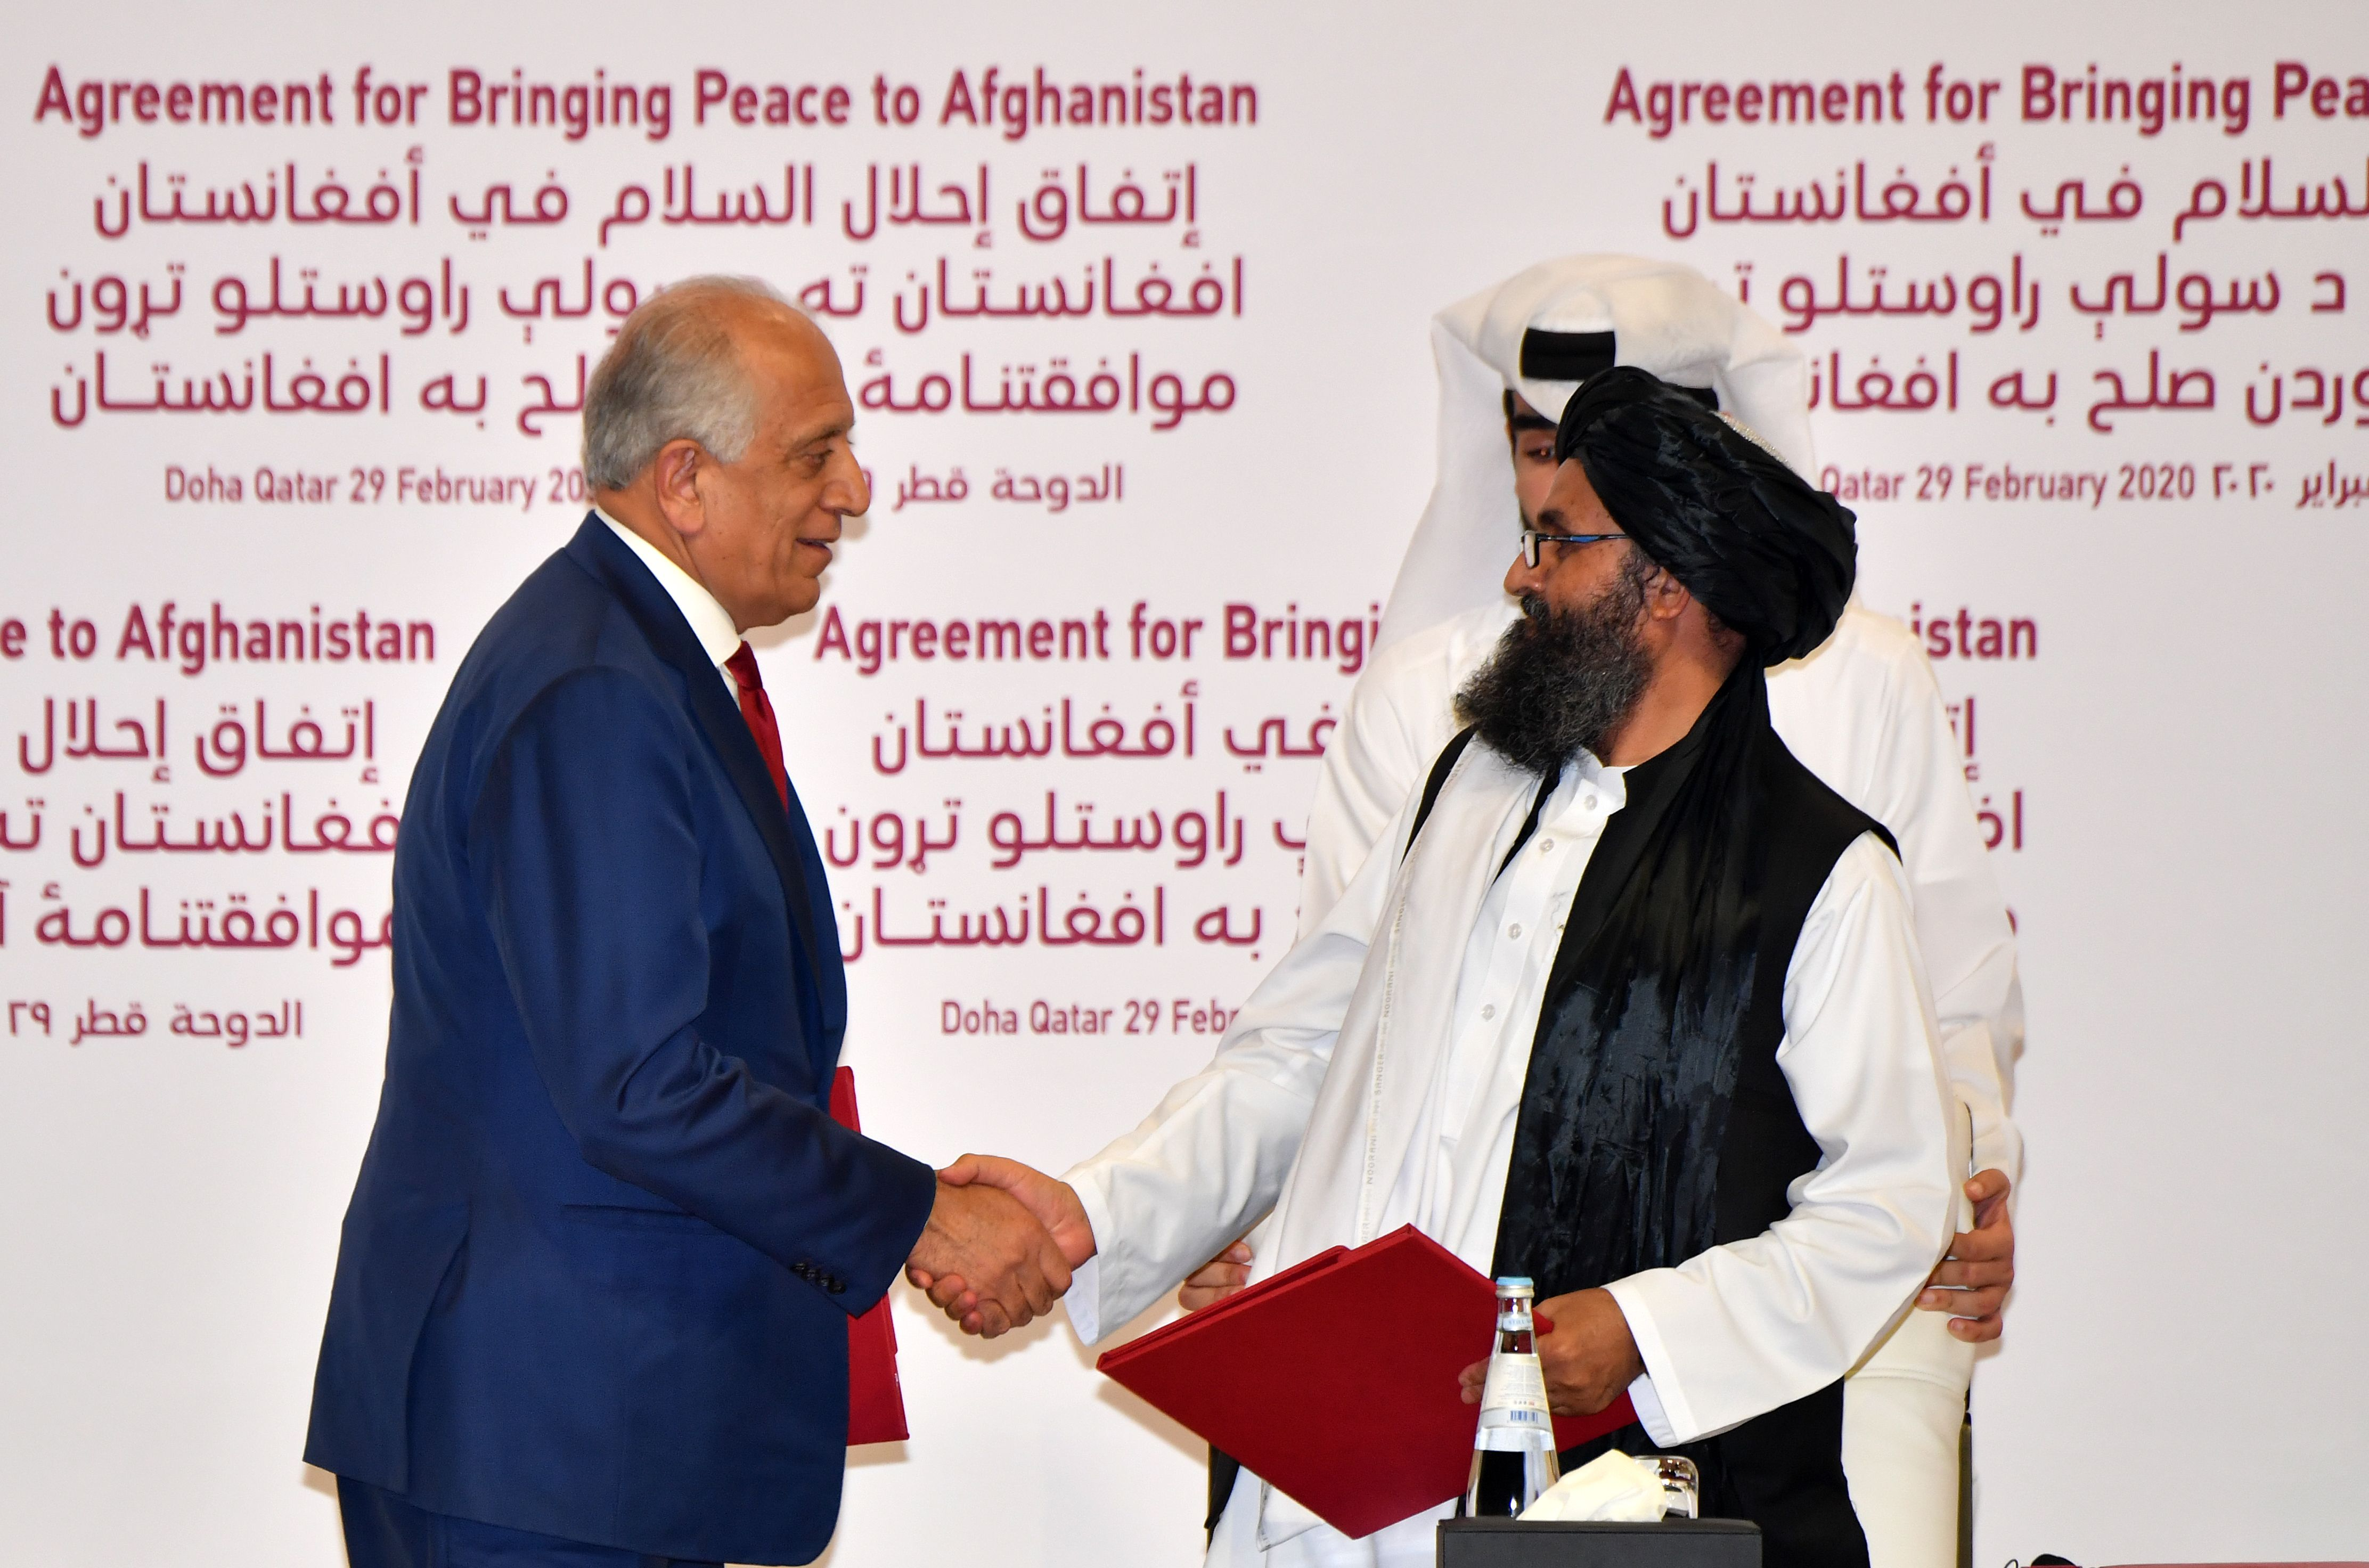 TOPSHOT - (L to R) US Special Representative for Afghanistan Reconciliation Zalmay Khalilzad and Taliban co-founder Mullah Abdul Ghani Baradar shake hands after signing a peace agreement during a ceremony in the Qatari capital Doha on February 29, 2020 - The United States signed a landmark deal with the Taliban, laying out a timetable for a full troop withdrawal from Afghanistan within 14 months as it seeks an exit from its longest-ever war. (Photo by Giuseppe CACACE / AFP) (Photo by GIUSEPPE CACACE/AFP via Getty Images)